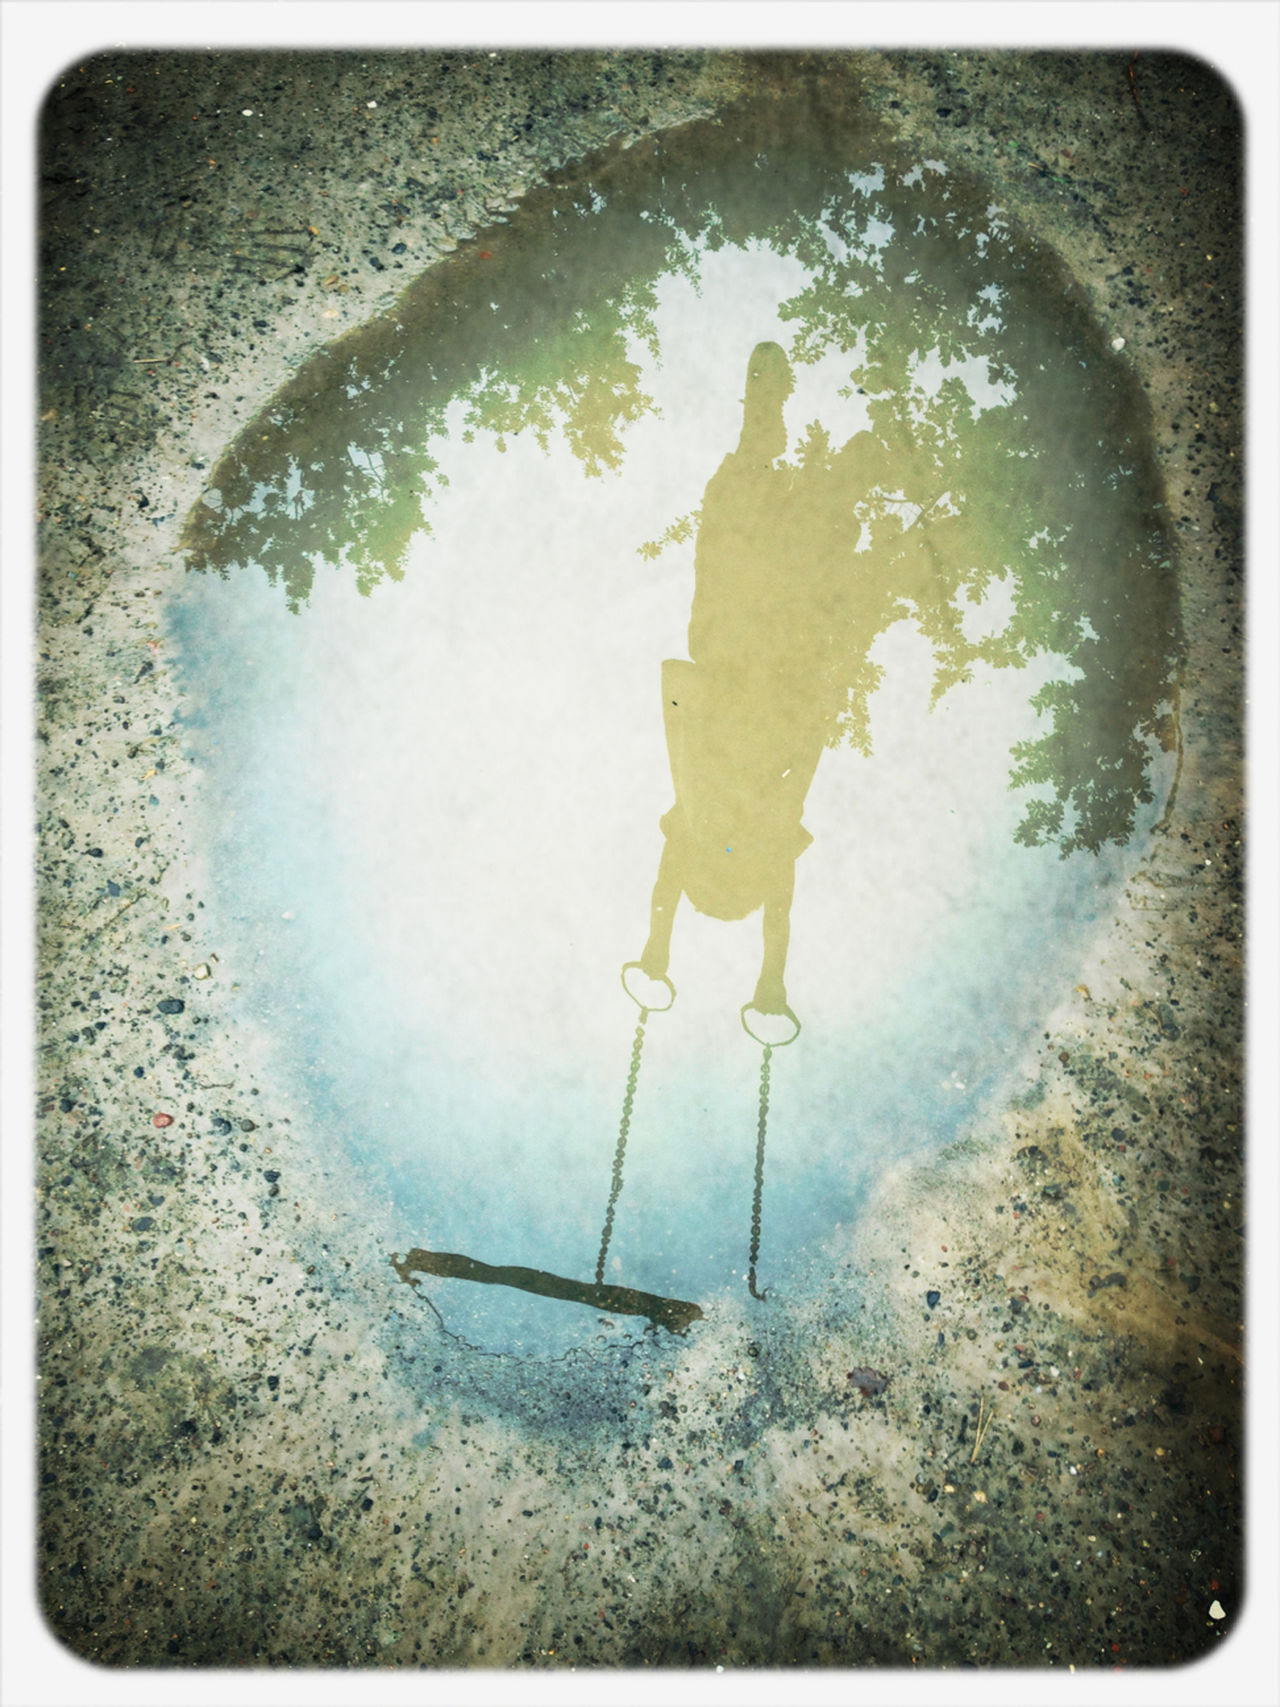 Reflection of girl swinging in puddle